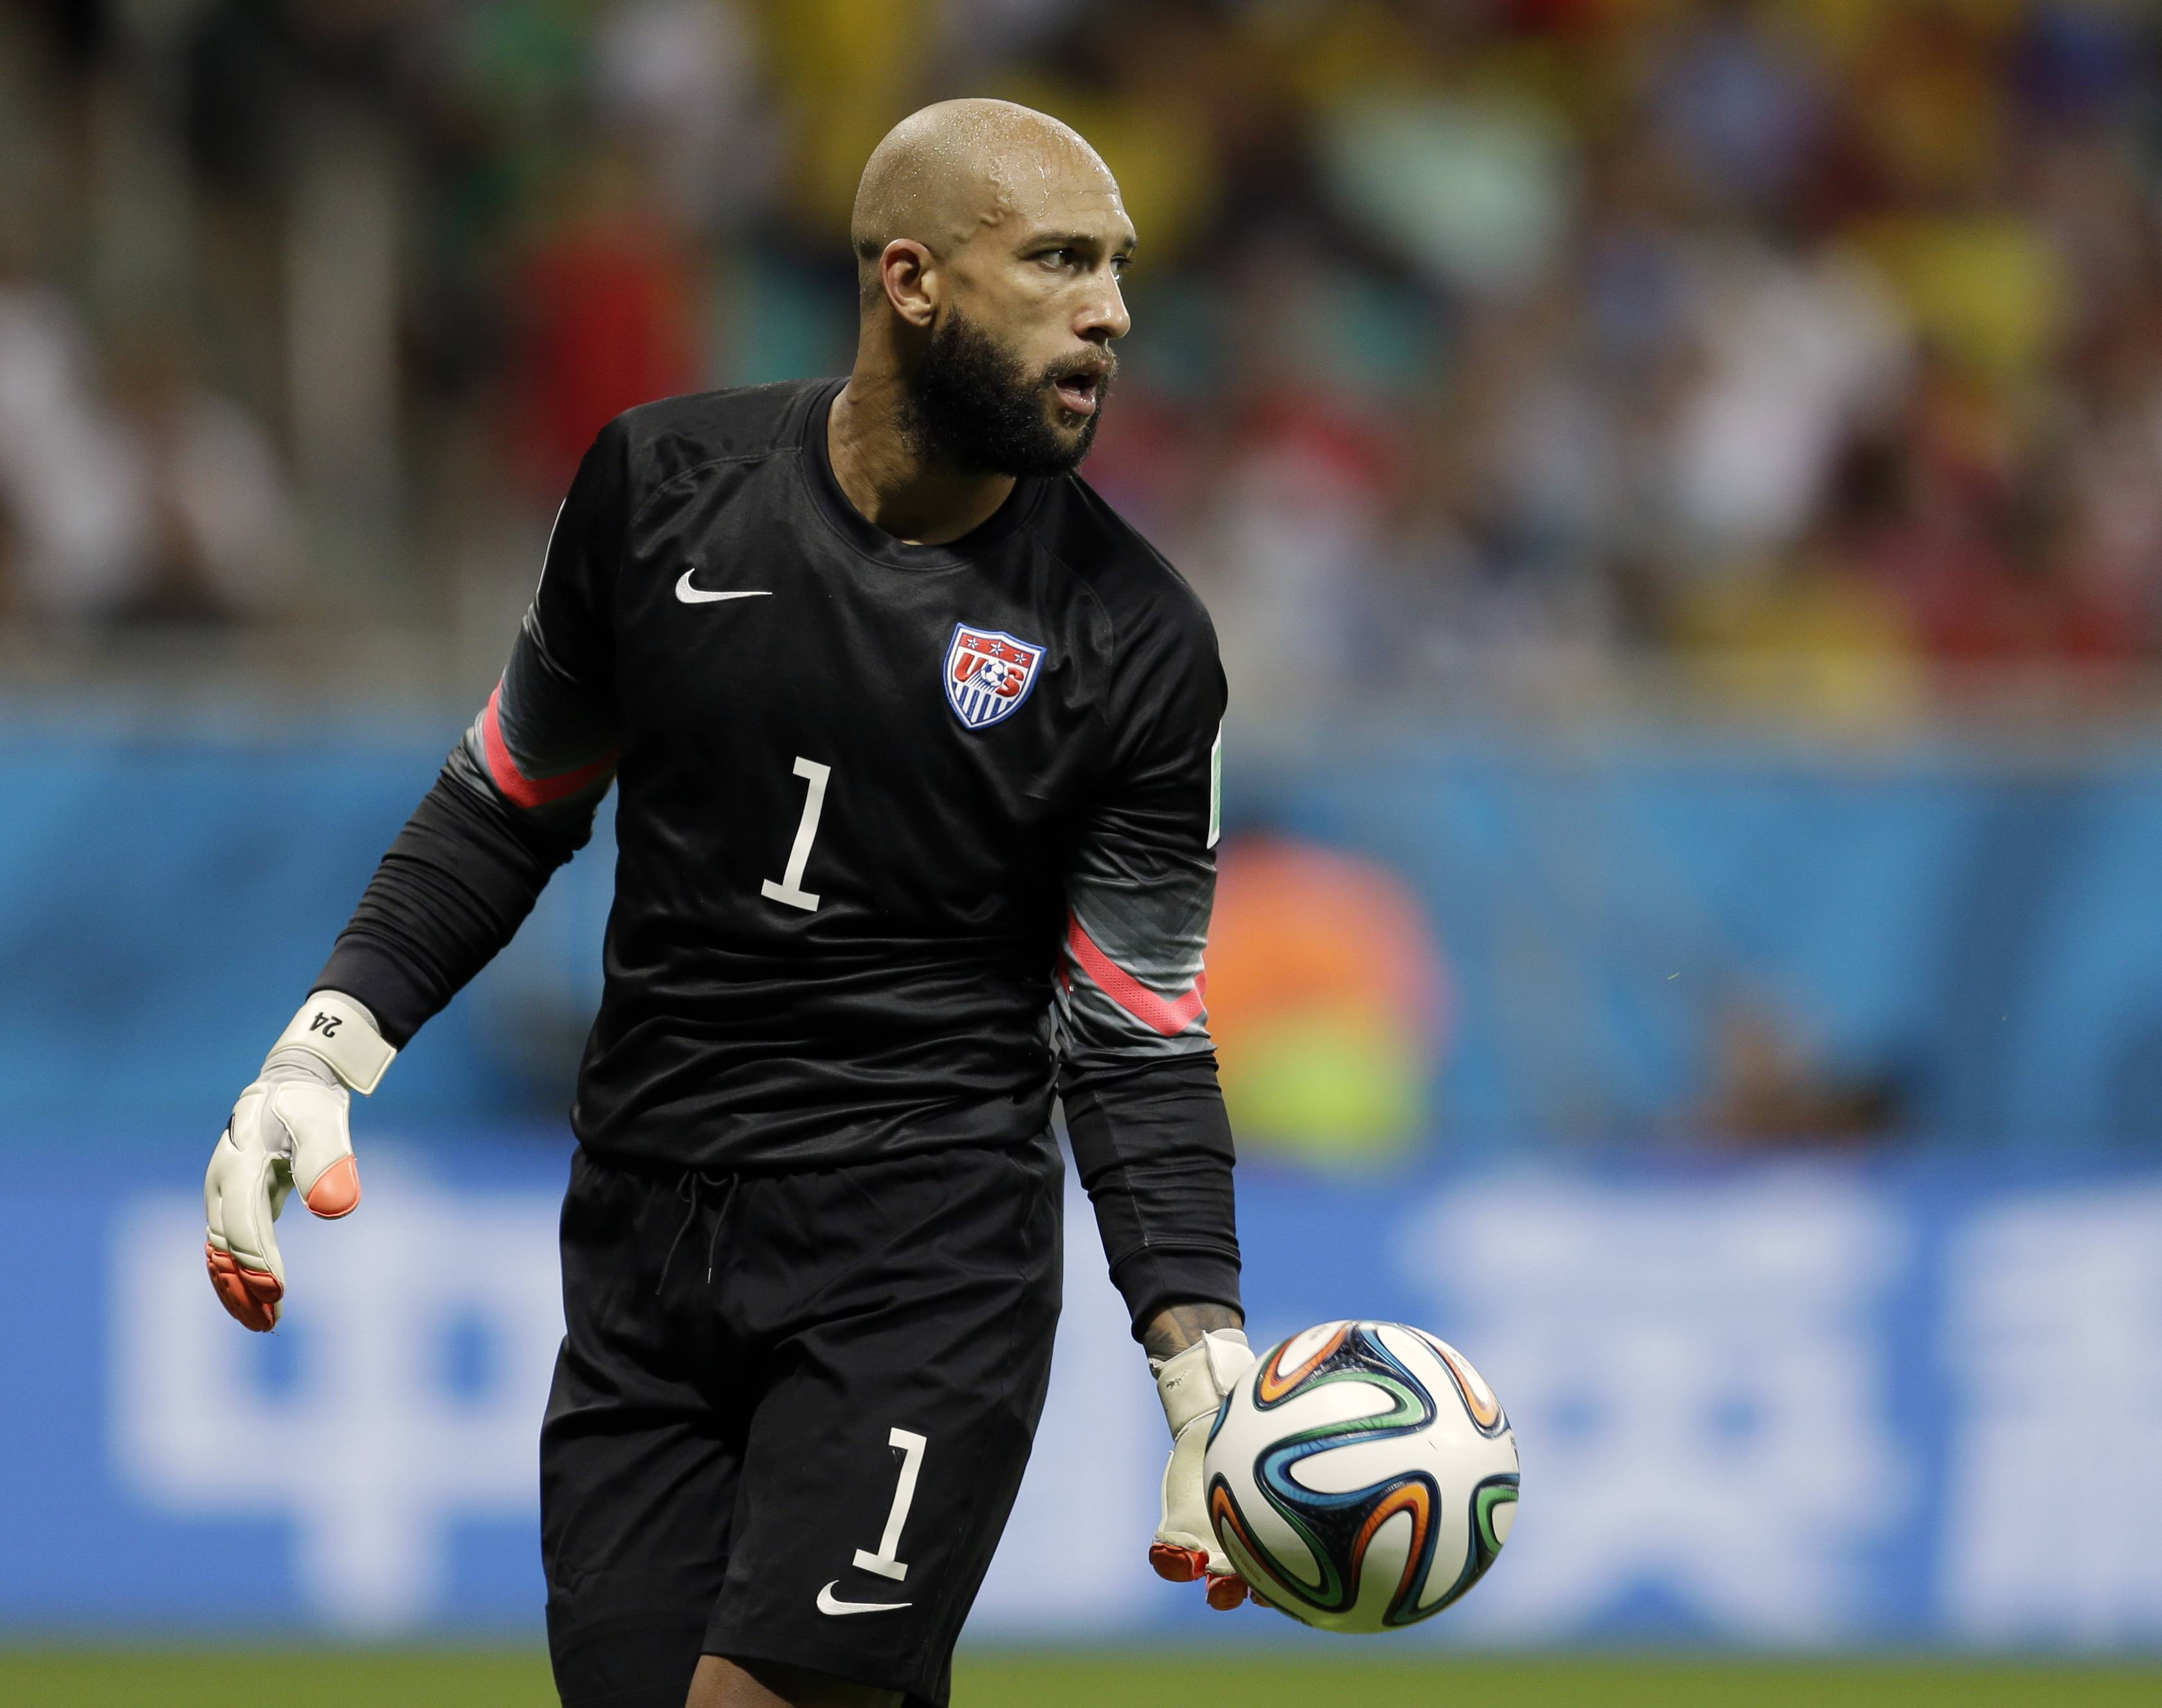 U.S. goalkeeper Tim Howard says he was eager to share the highs and lows of his life and career, including his battles with Tourette's syndrome, and hopes to inspire others.